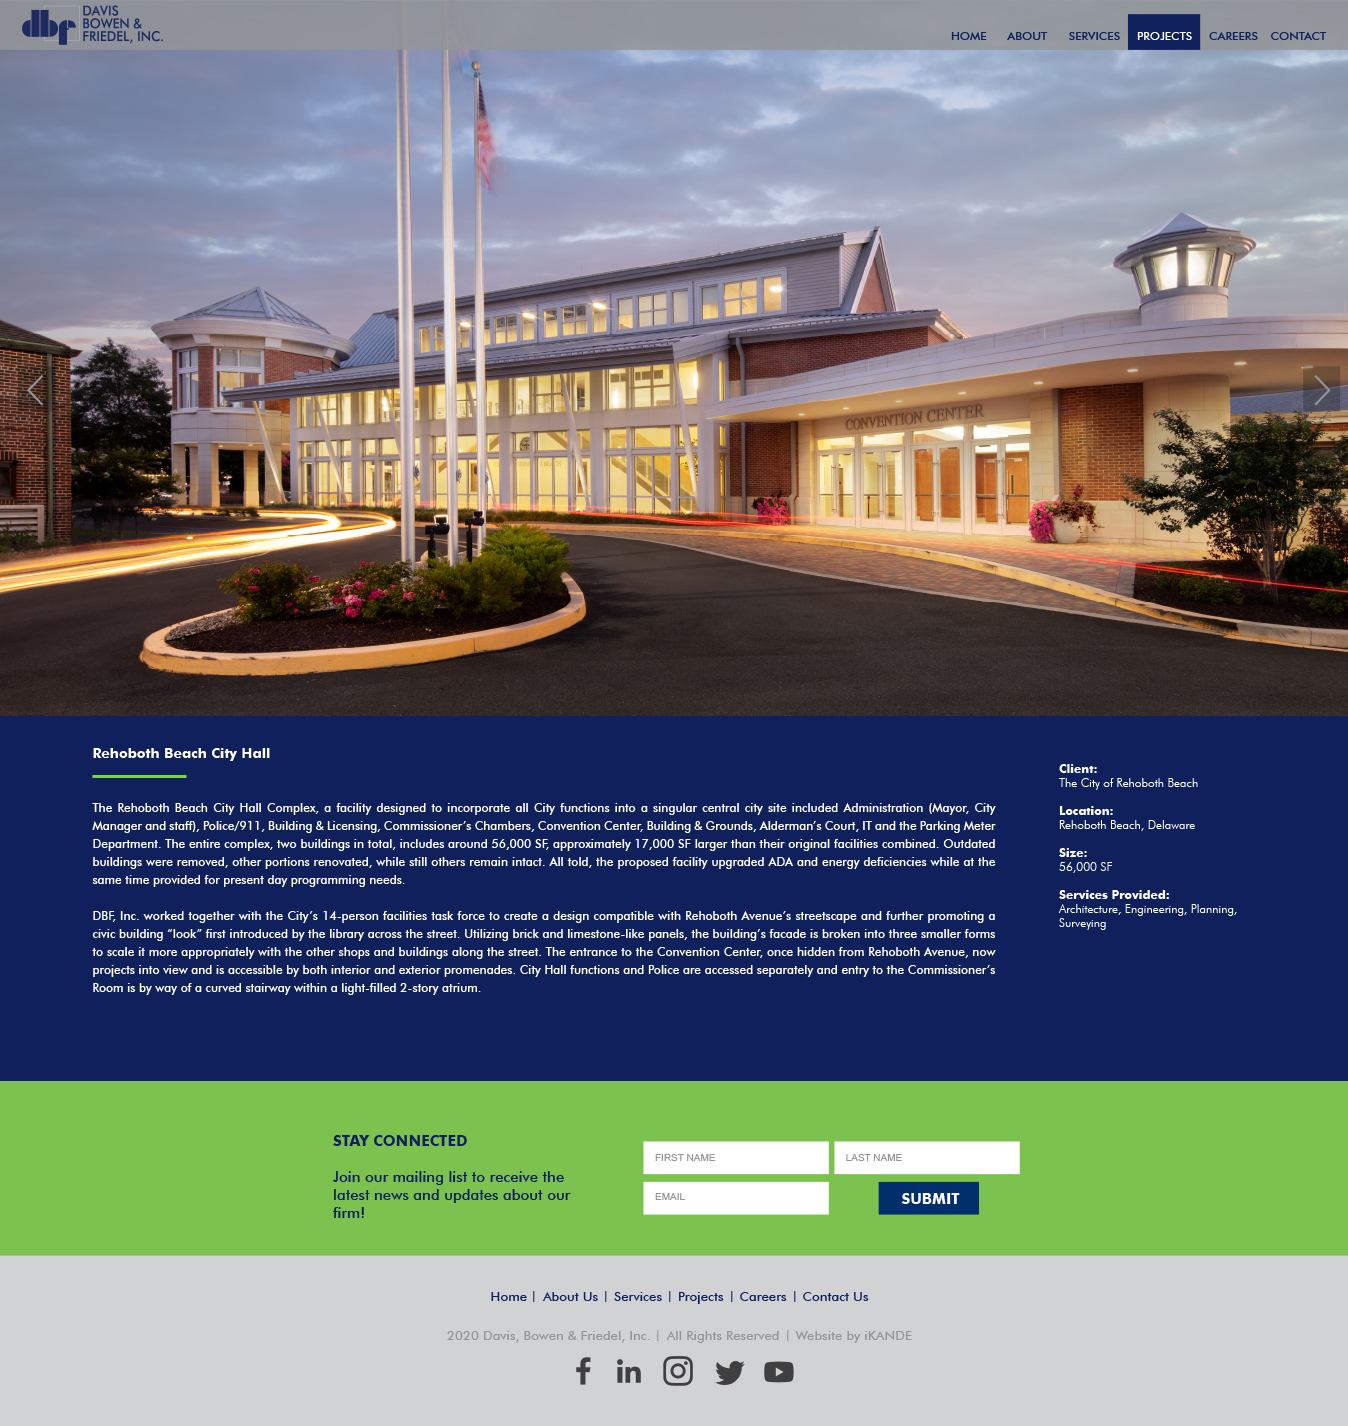 DBF inc Rehoboth project page and web design by iKANDE